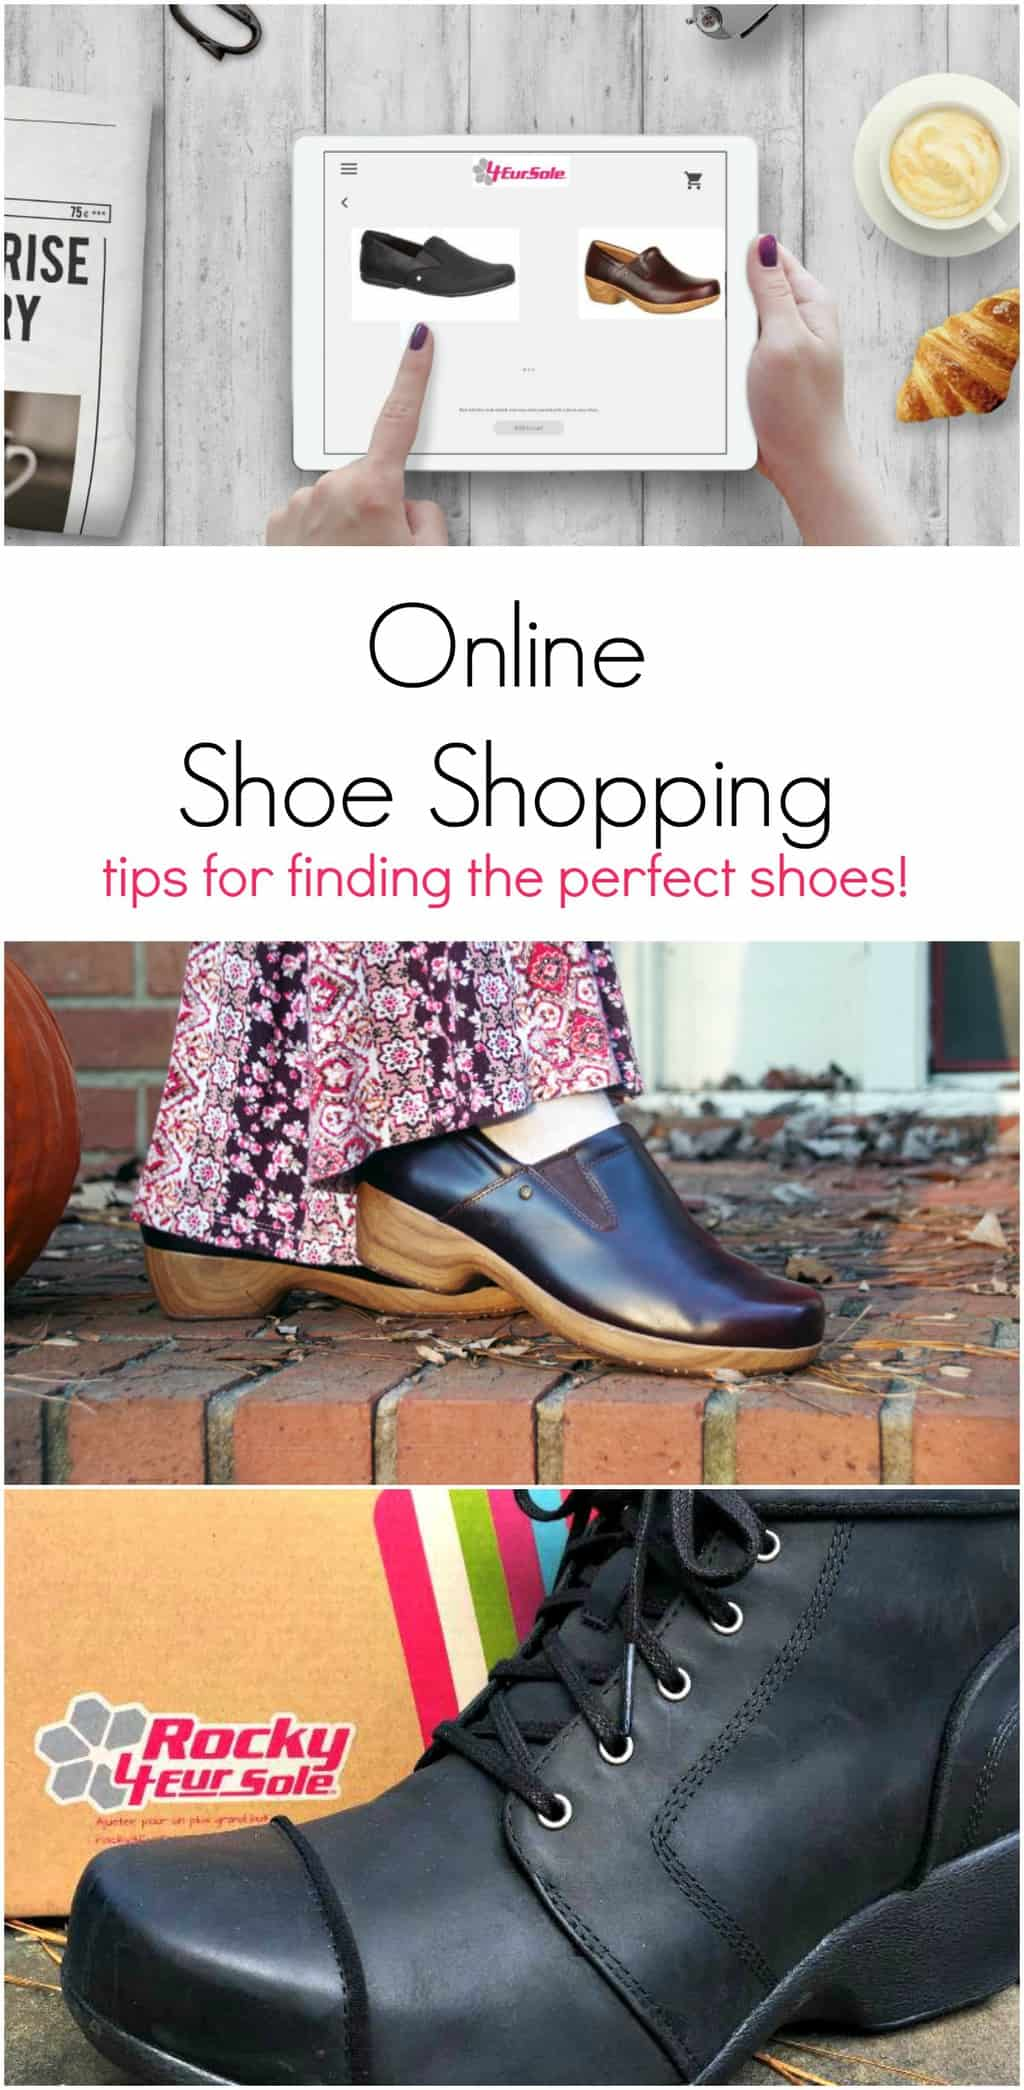 Since returning shoes to an online shoe store is sort of a pain, you need a remember a few of these shoe shopping tips before you buy online shoes.